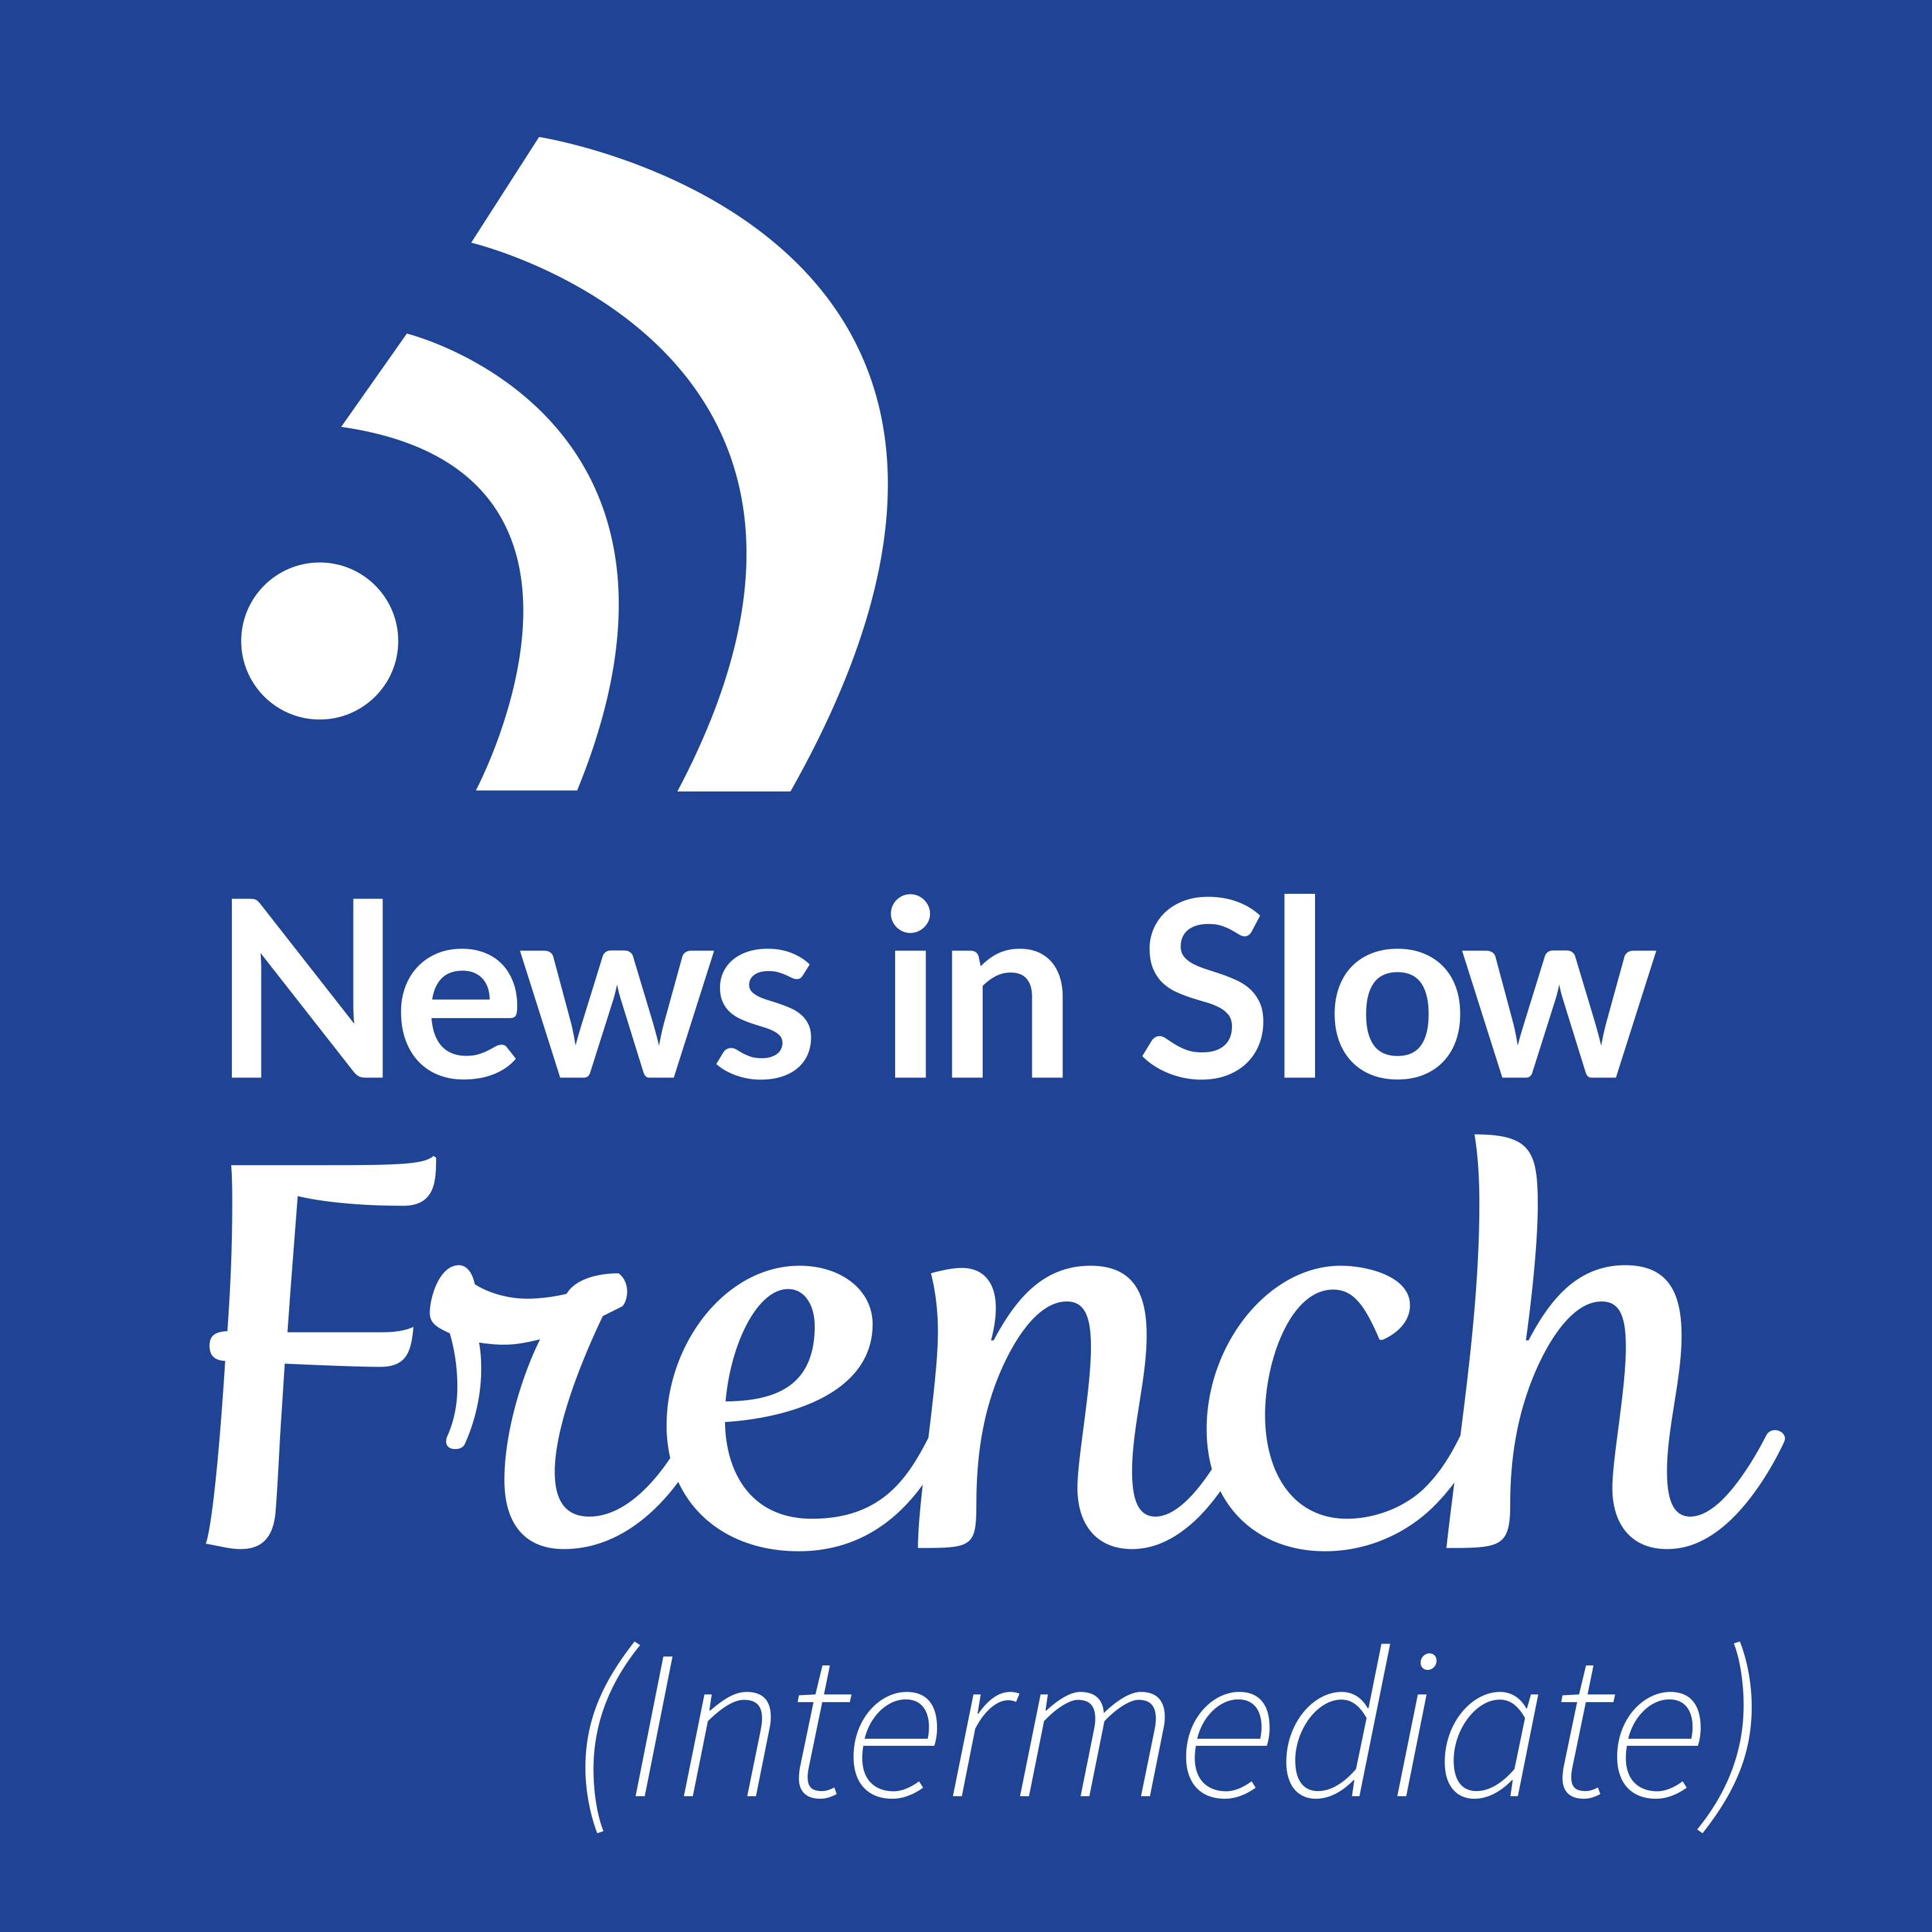 News in Slow French #303 - Learn French through current events